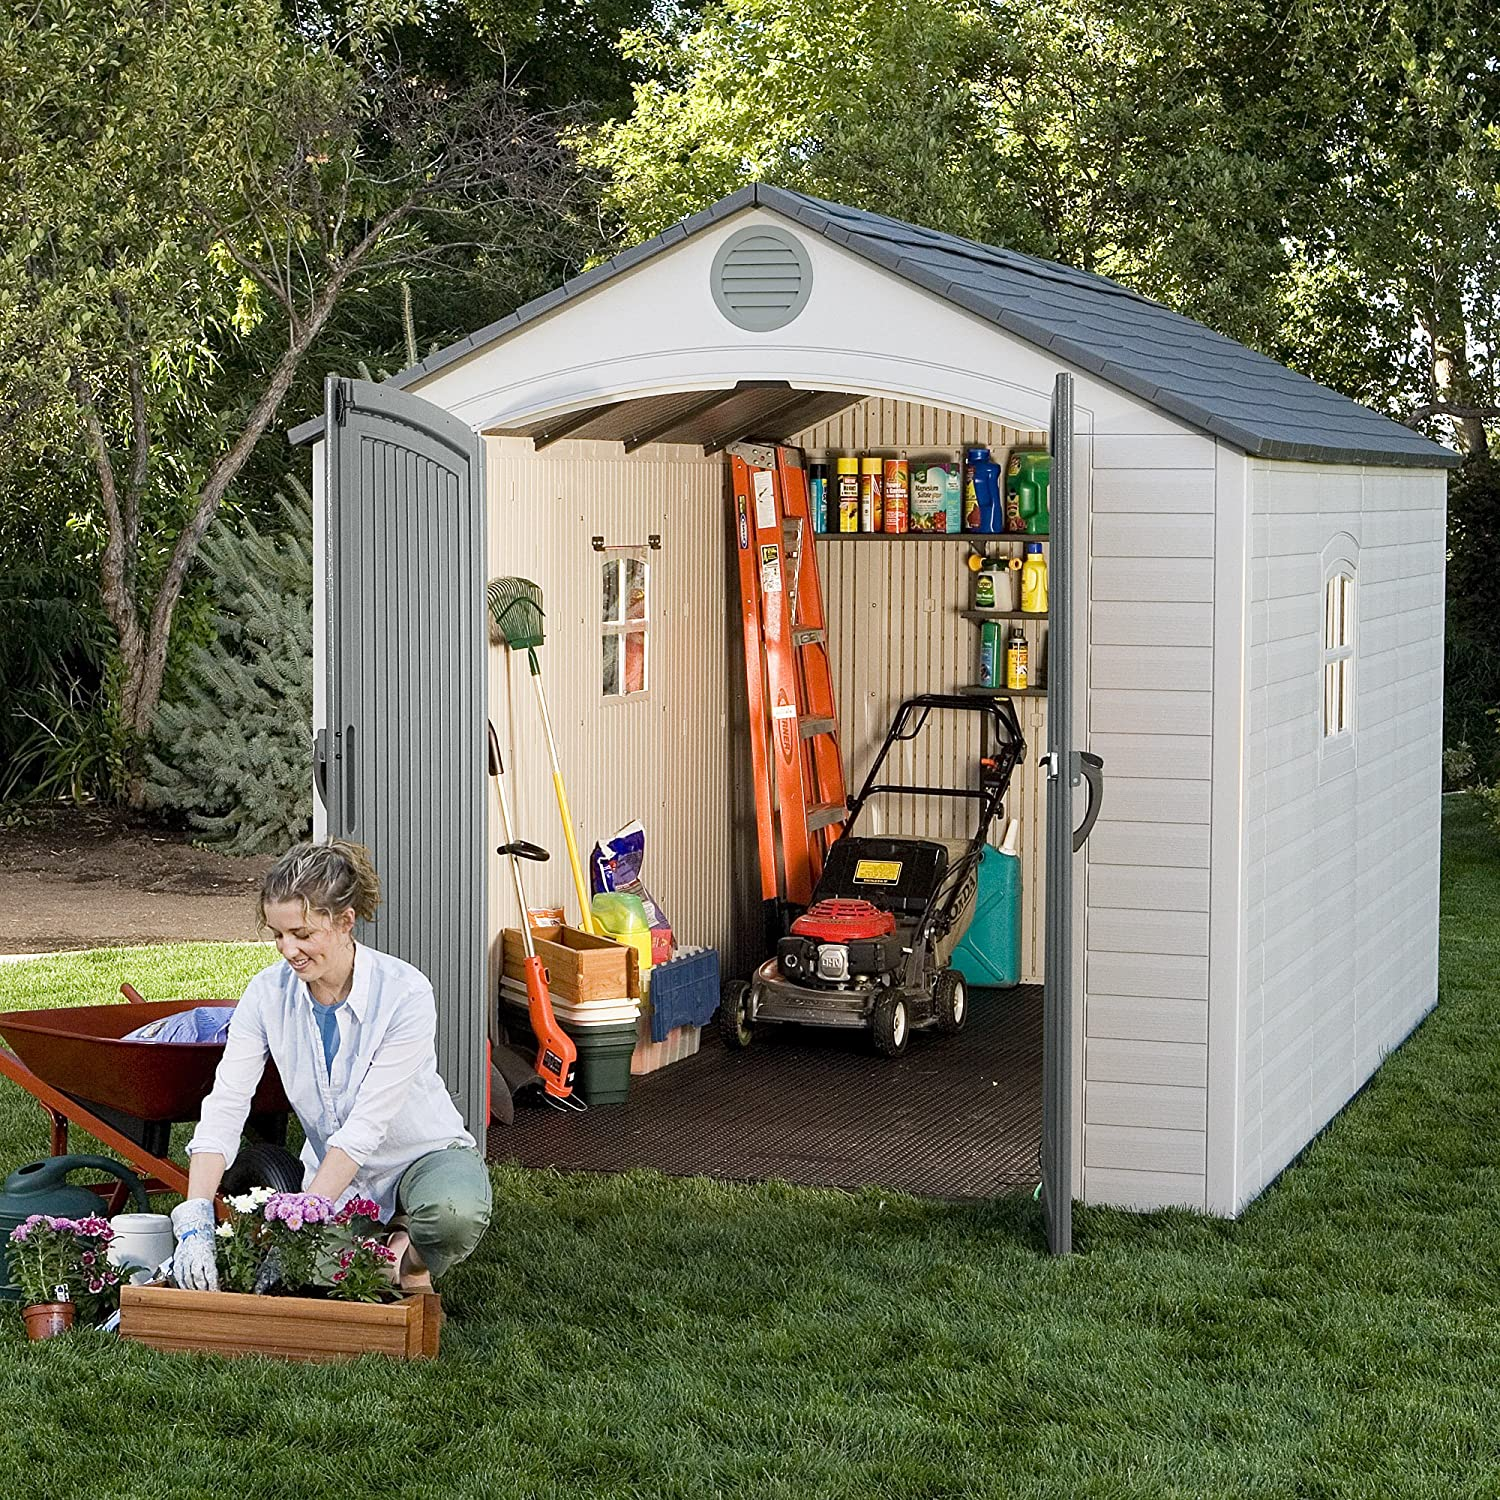 amazon com lifetime 6402 outdoor storage shed 8 by 12 5 feet 2